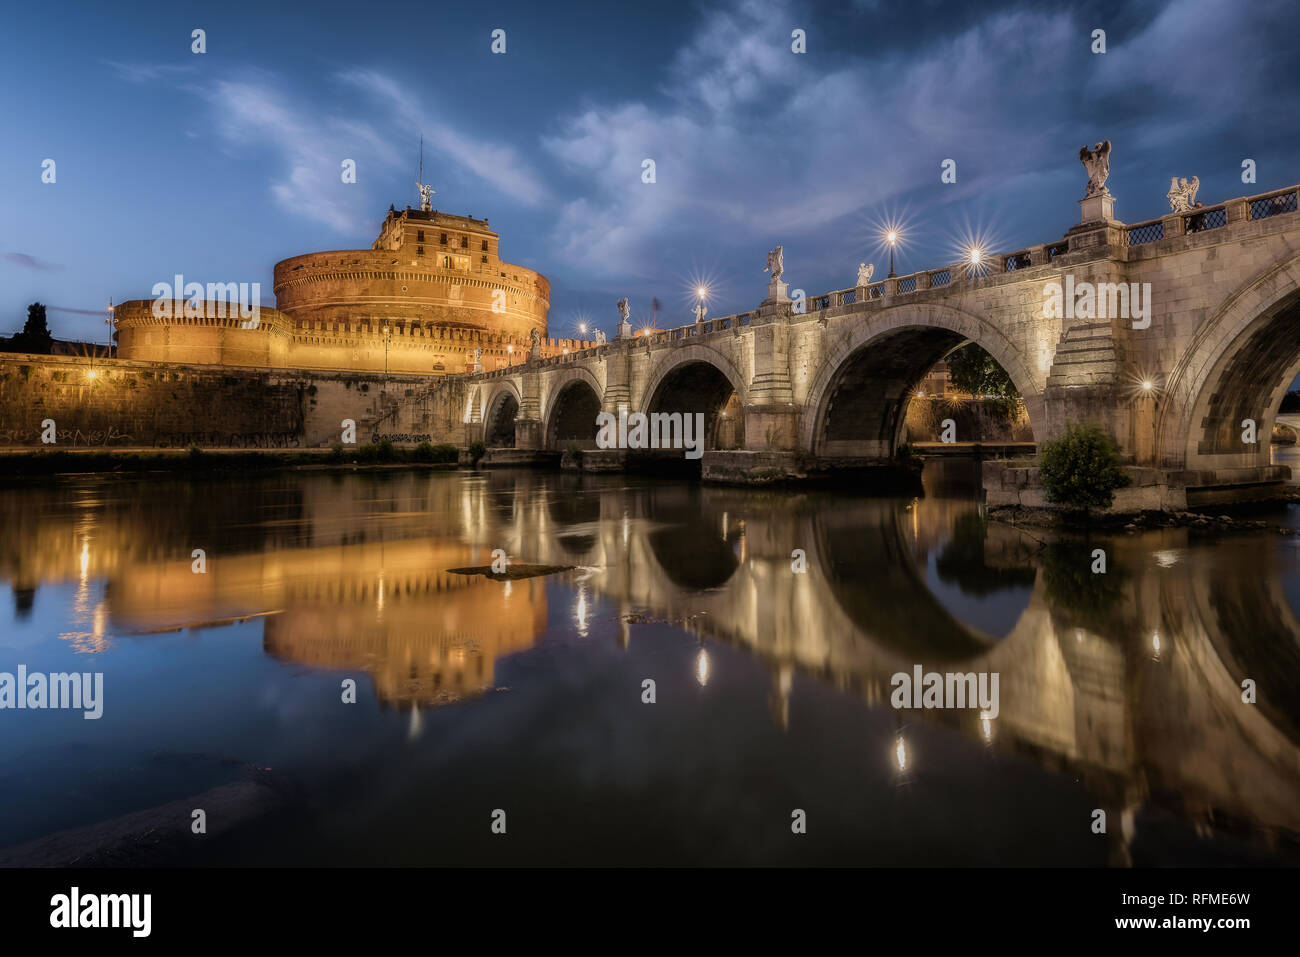 A beautiful night in Rome, Italy. - Stock Image